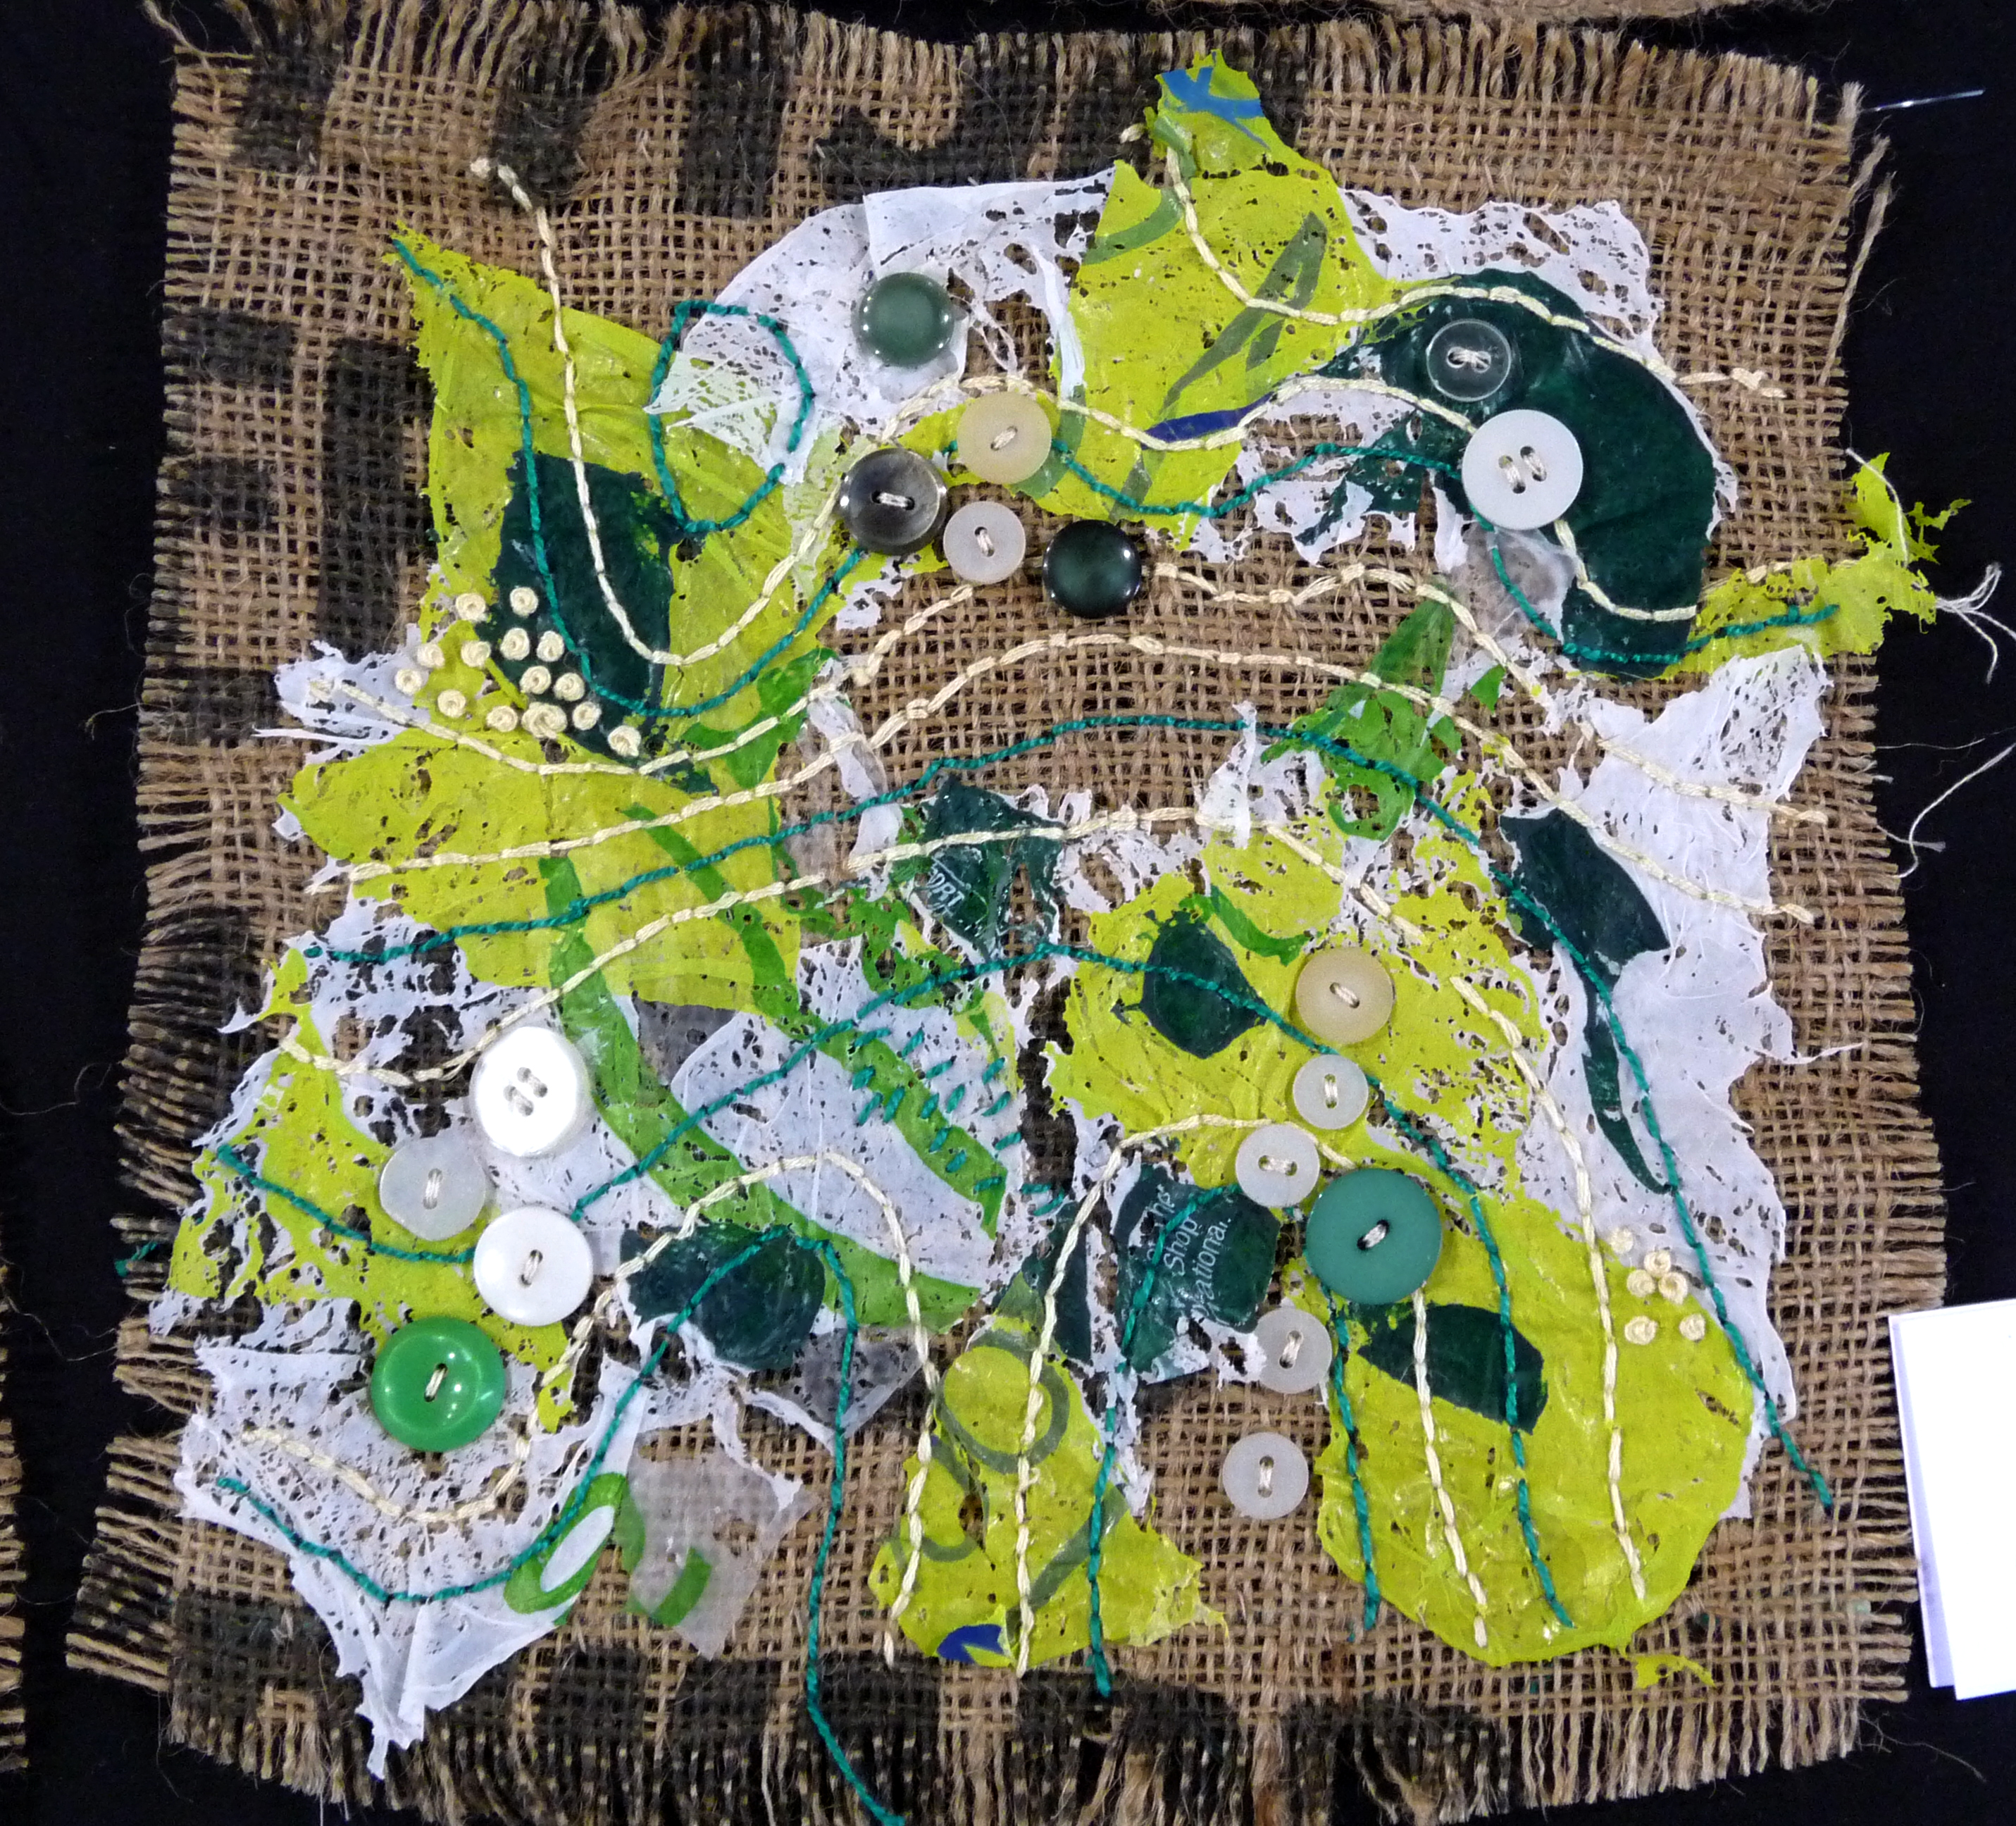 MIND MAP, Wild & Wacky, by Gill Snaith, recycled potato sack, plastic bags, buttons and threads